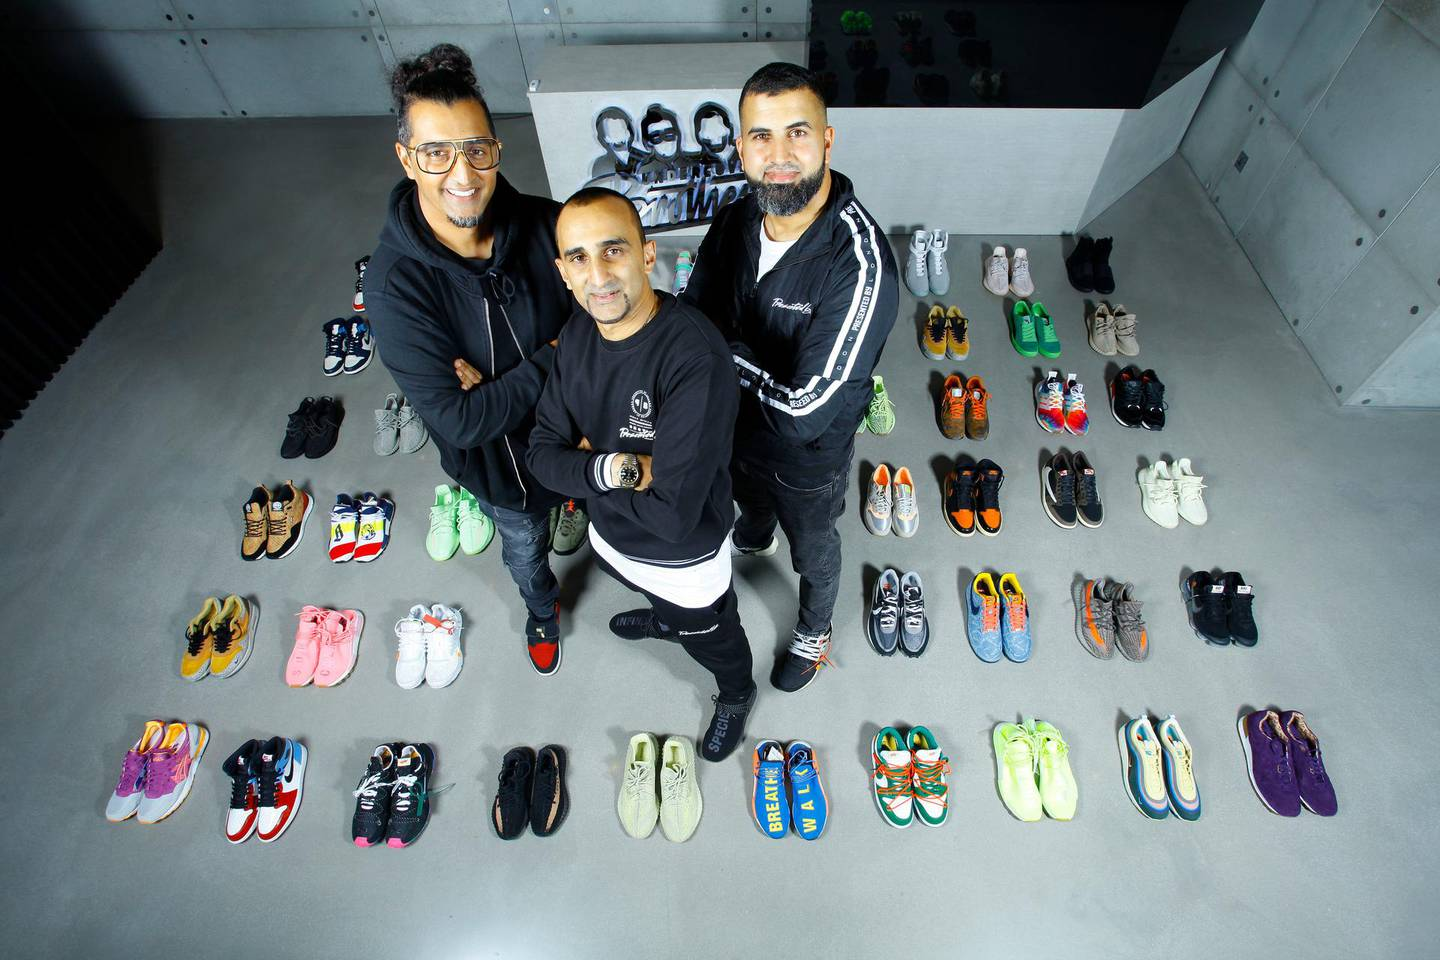 Crep Protect owners and brothers, Nohman (beard), Imran (glasses), Riz Ahmed